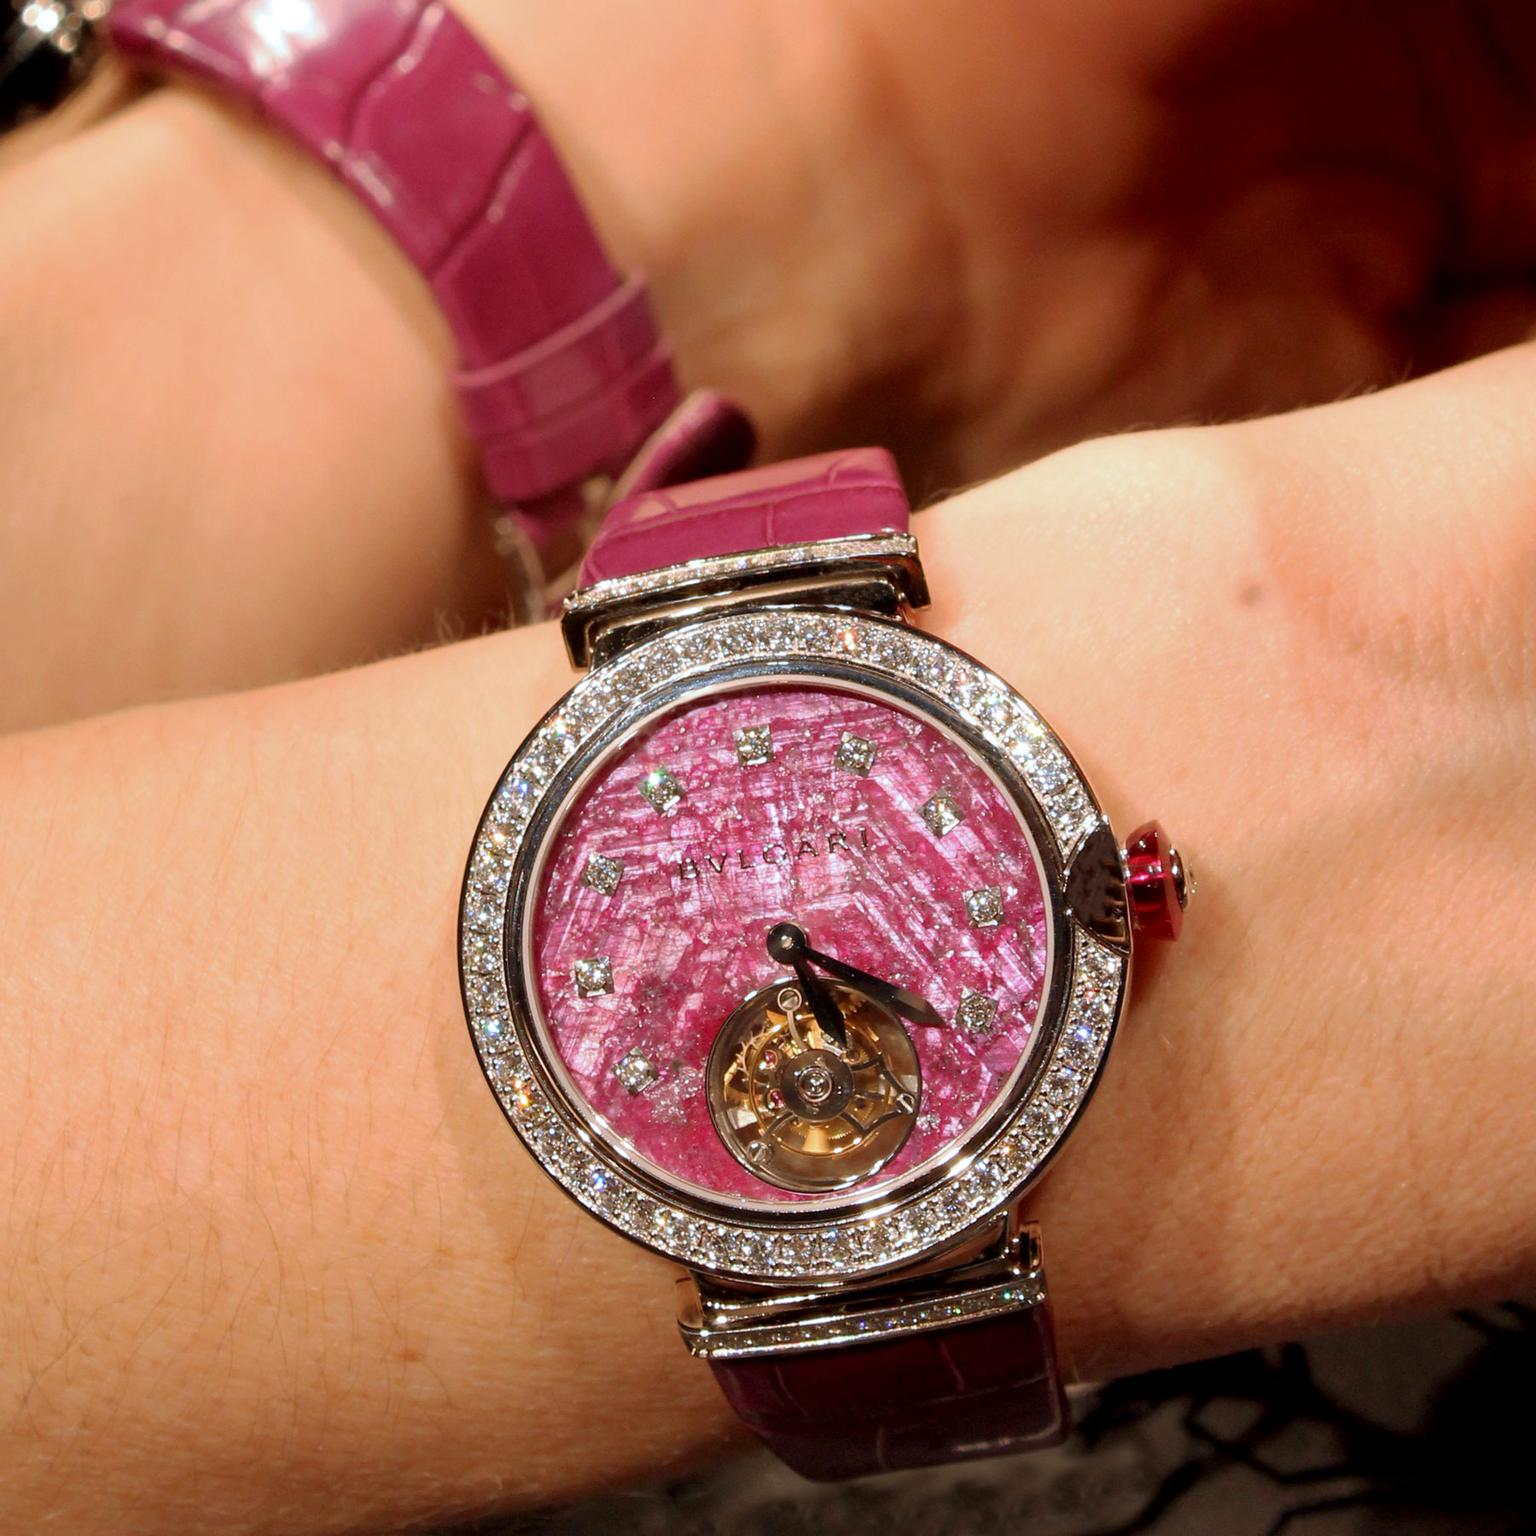 Bulgari LVCEA Tourbillon with ruby dial watch as seen at Baselworld